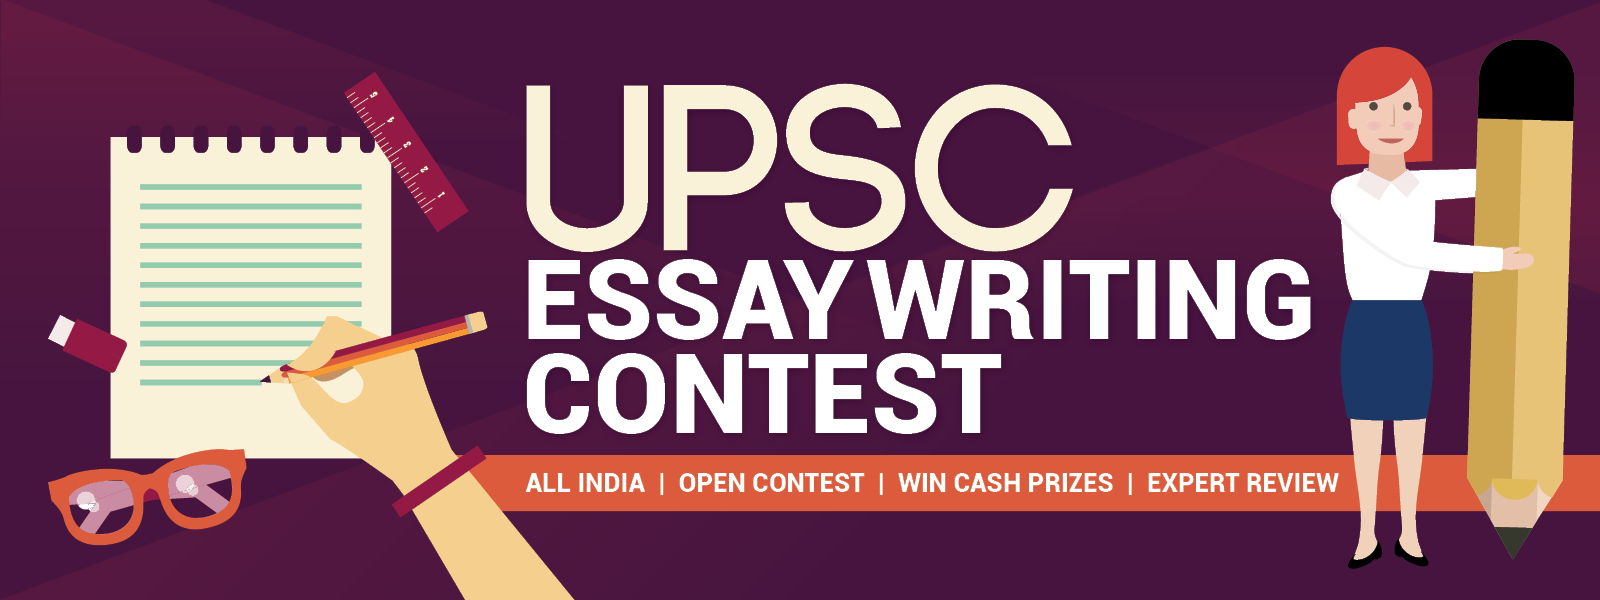 Web Design boom essay writing contest